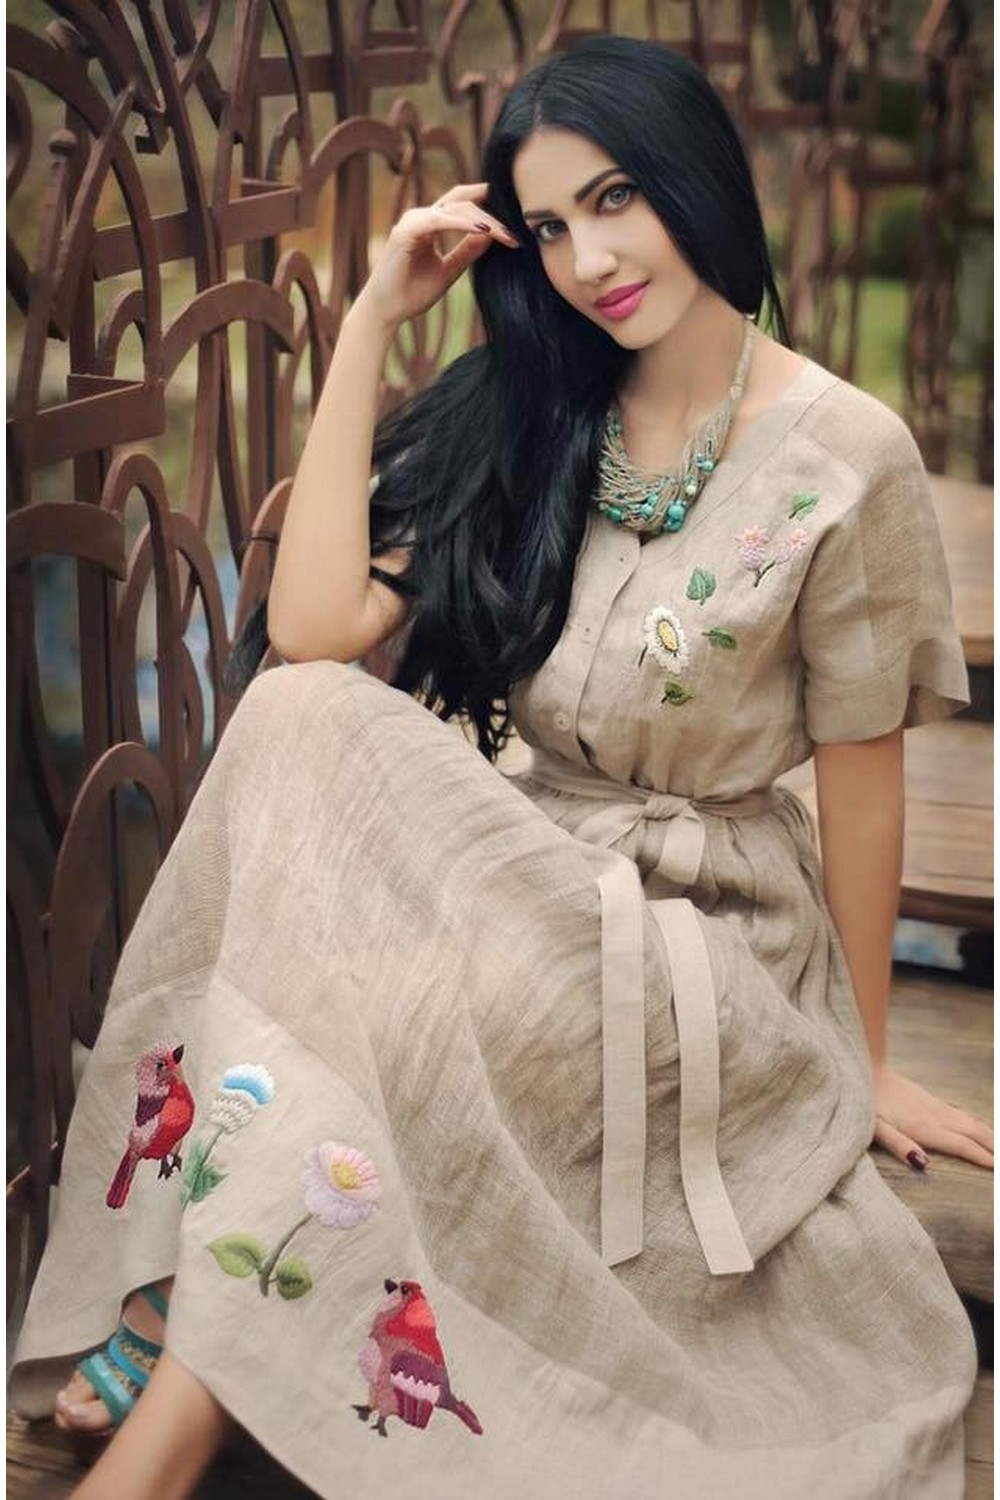 Buy Ethno linen beige dress in ethnic style with embroidery, Summer original women`s dress